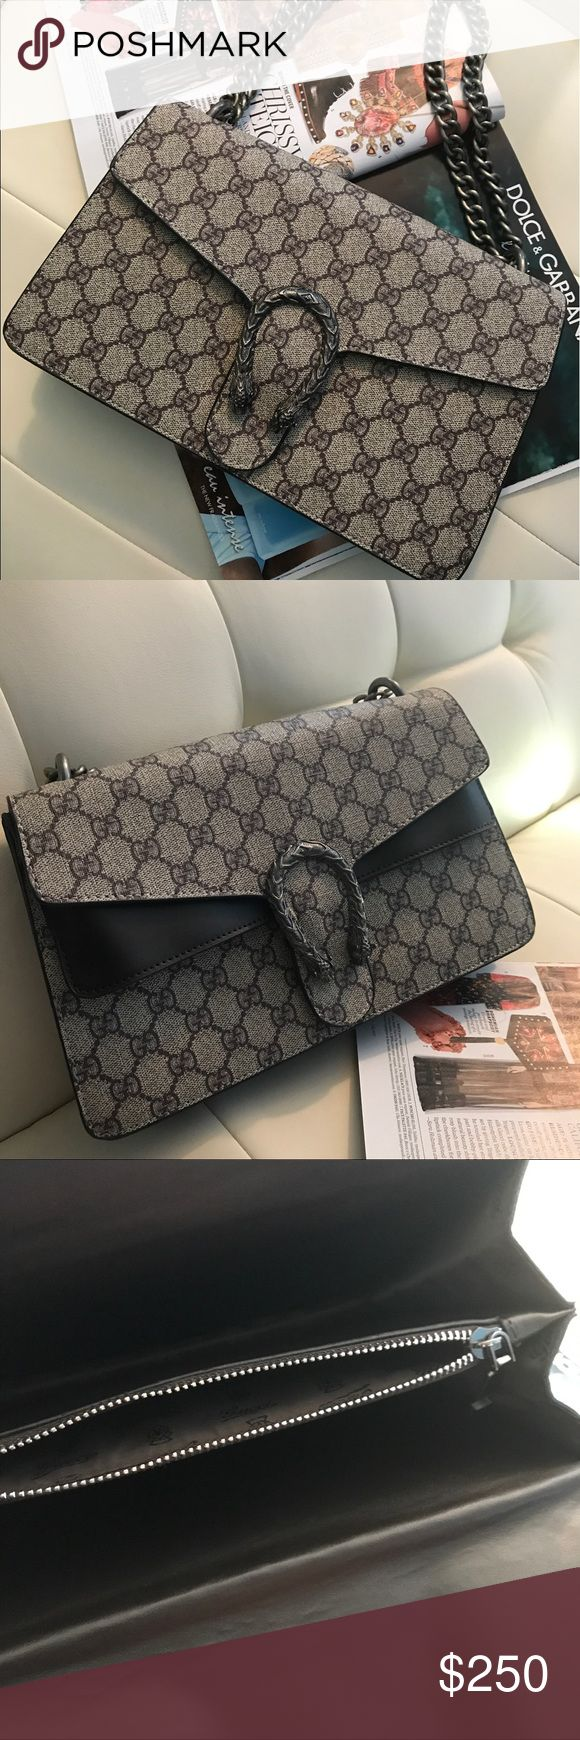 """Gucci bag Gucci Dionysus bag, it's a canvas like material, it doesn't have any suede on the flap. The bag is dark brown,with a gun metal chain and has ceasing on the inside of the flap. Crossbody/ preloved only once❤️ btw dust bag or controller number not included. """"Price reflects! Bags Crossbody Bags"""